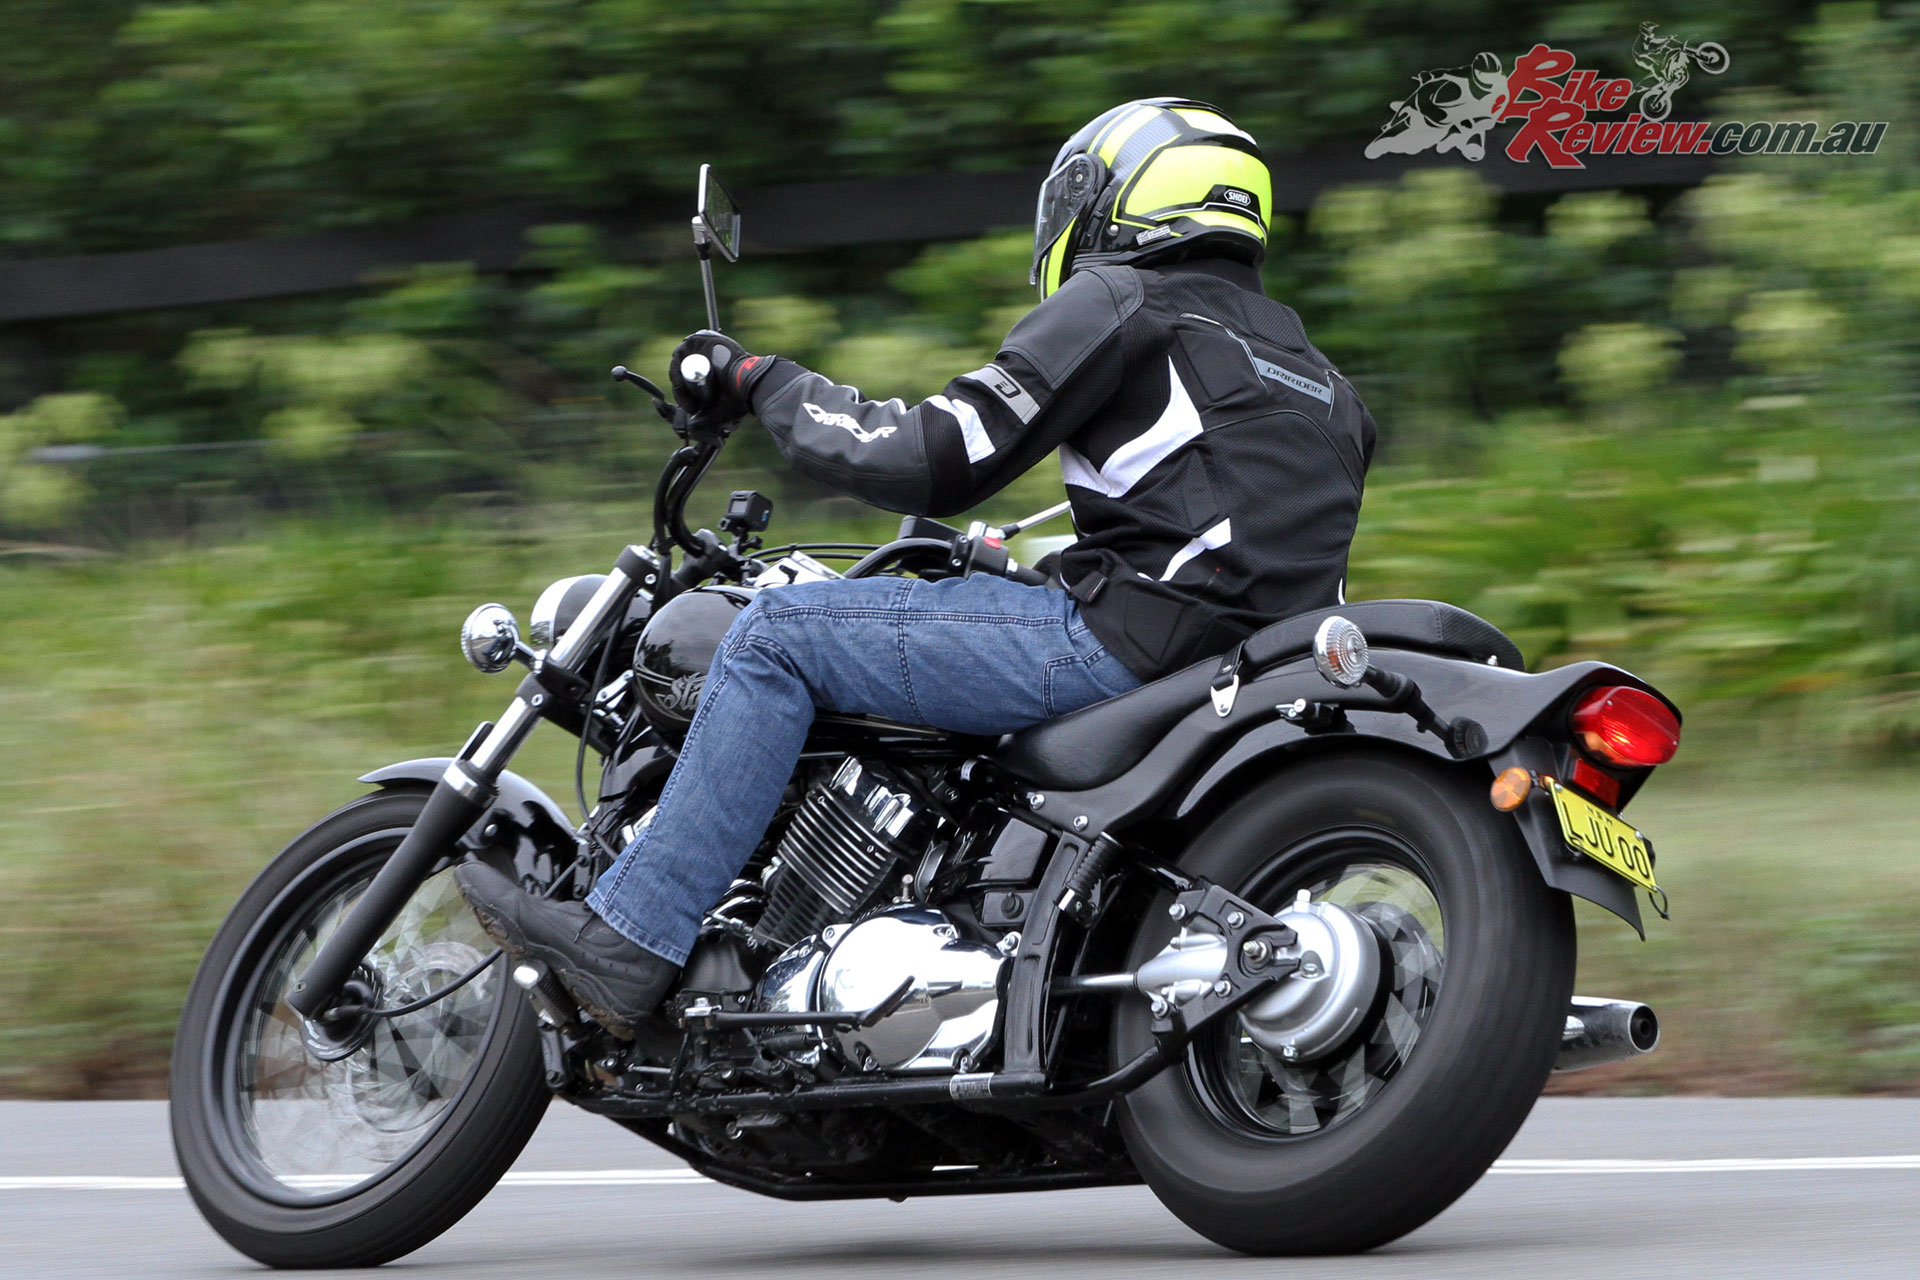 The V-Star 650 has strong torque from down low through the rev range and a five speed gearbox is mainly noticed on the freeway